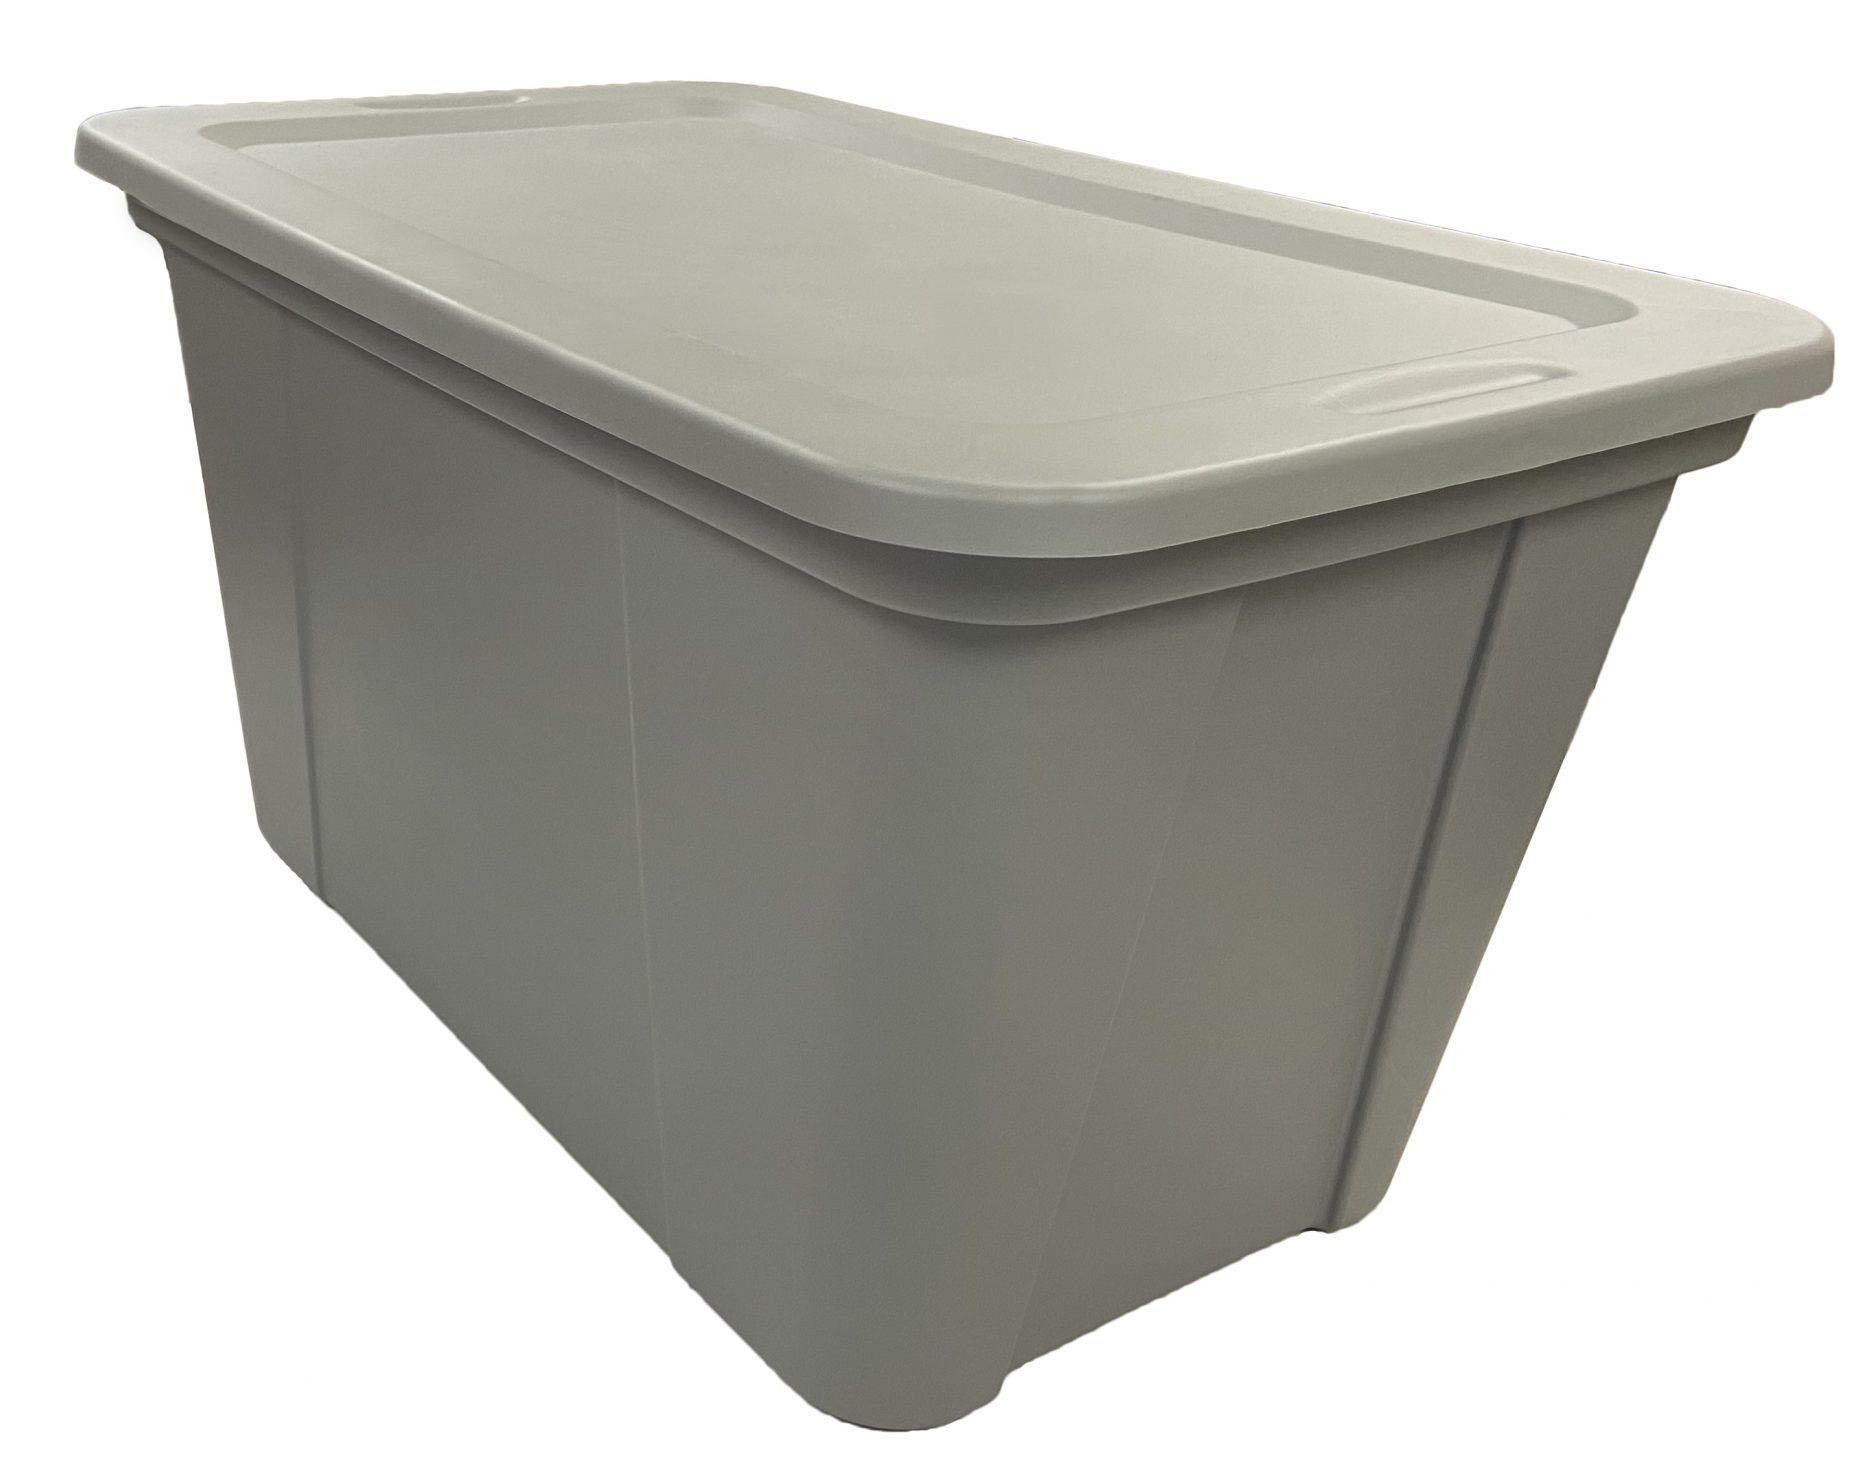 home storage totes, Edge Plastics Inc. Injection Molding Manufacturer, Ohio